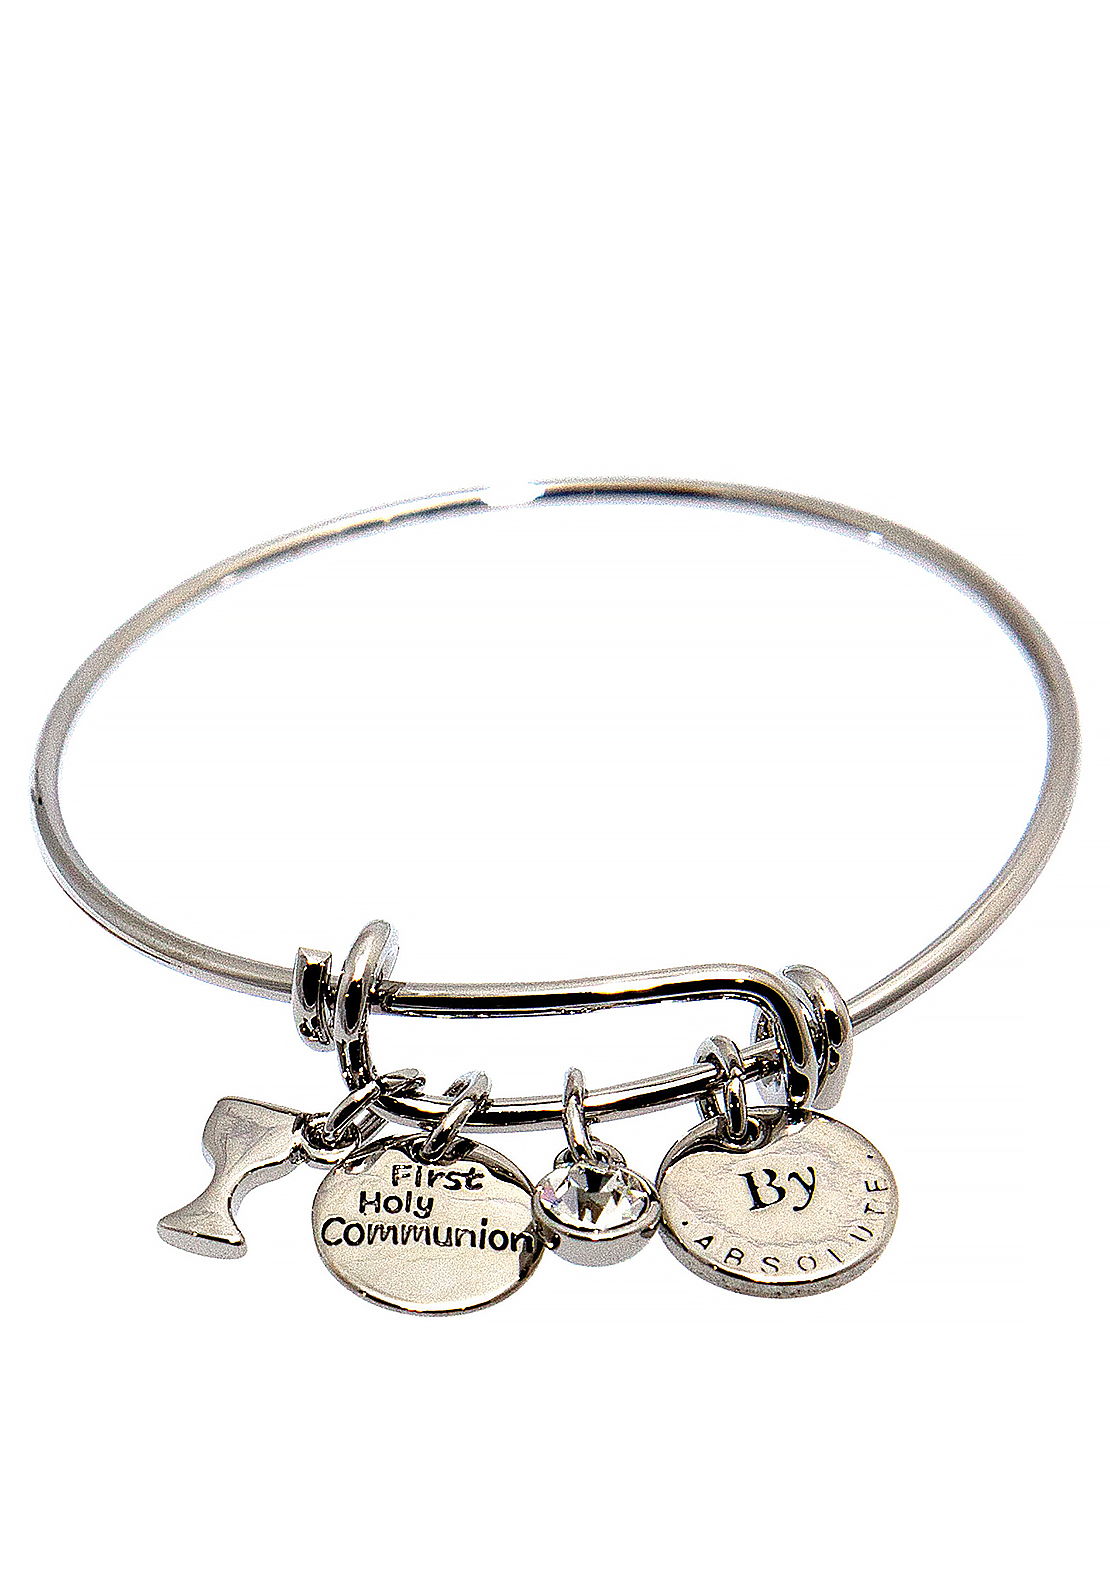 Absolute Jewellery Girls First Holy Communion Charm Bangle, Silver